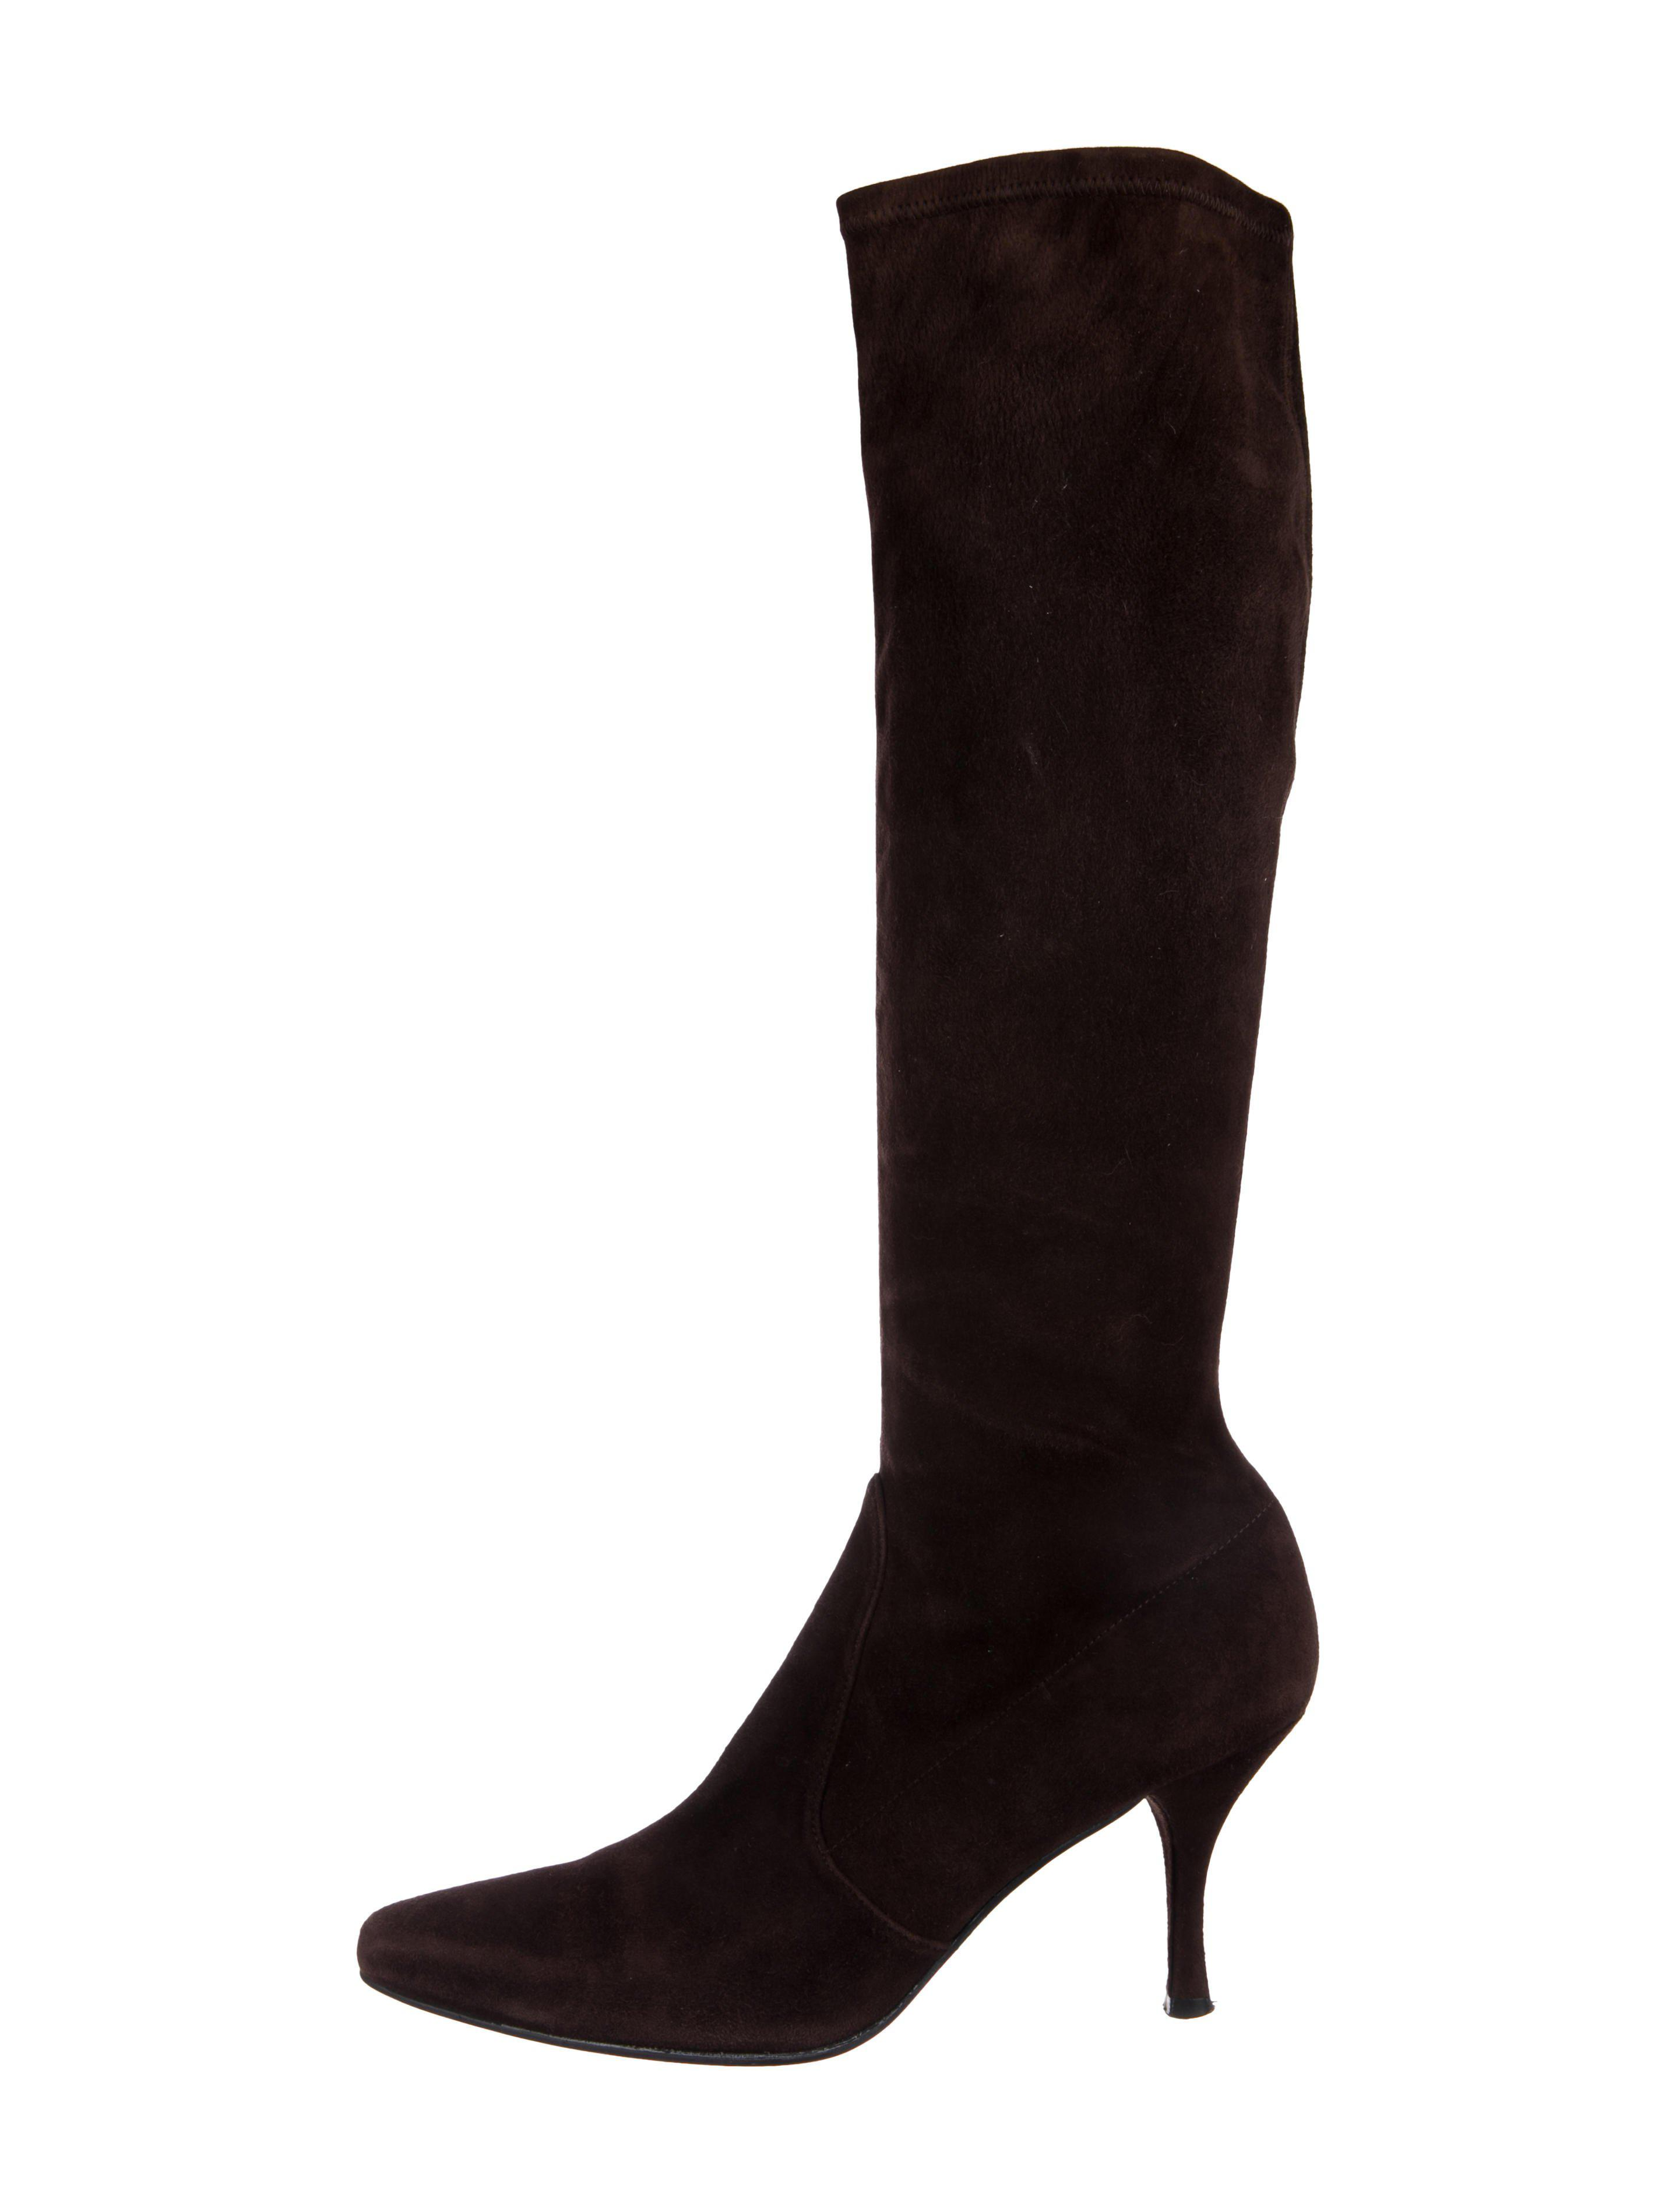 cheap sale extremely free shipping 2015 Stuart Weitzman Strapmein Knee-High Boots 2015 new for sale for cheap online 6BfiuhL